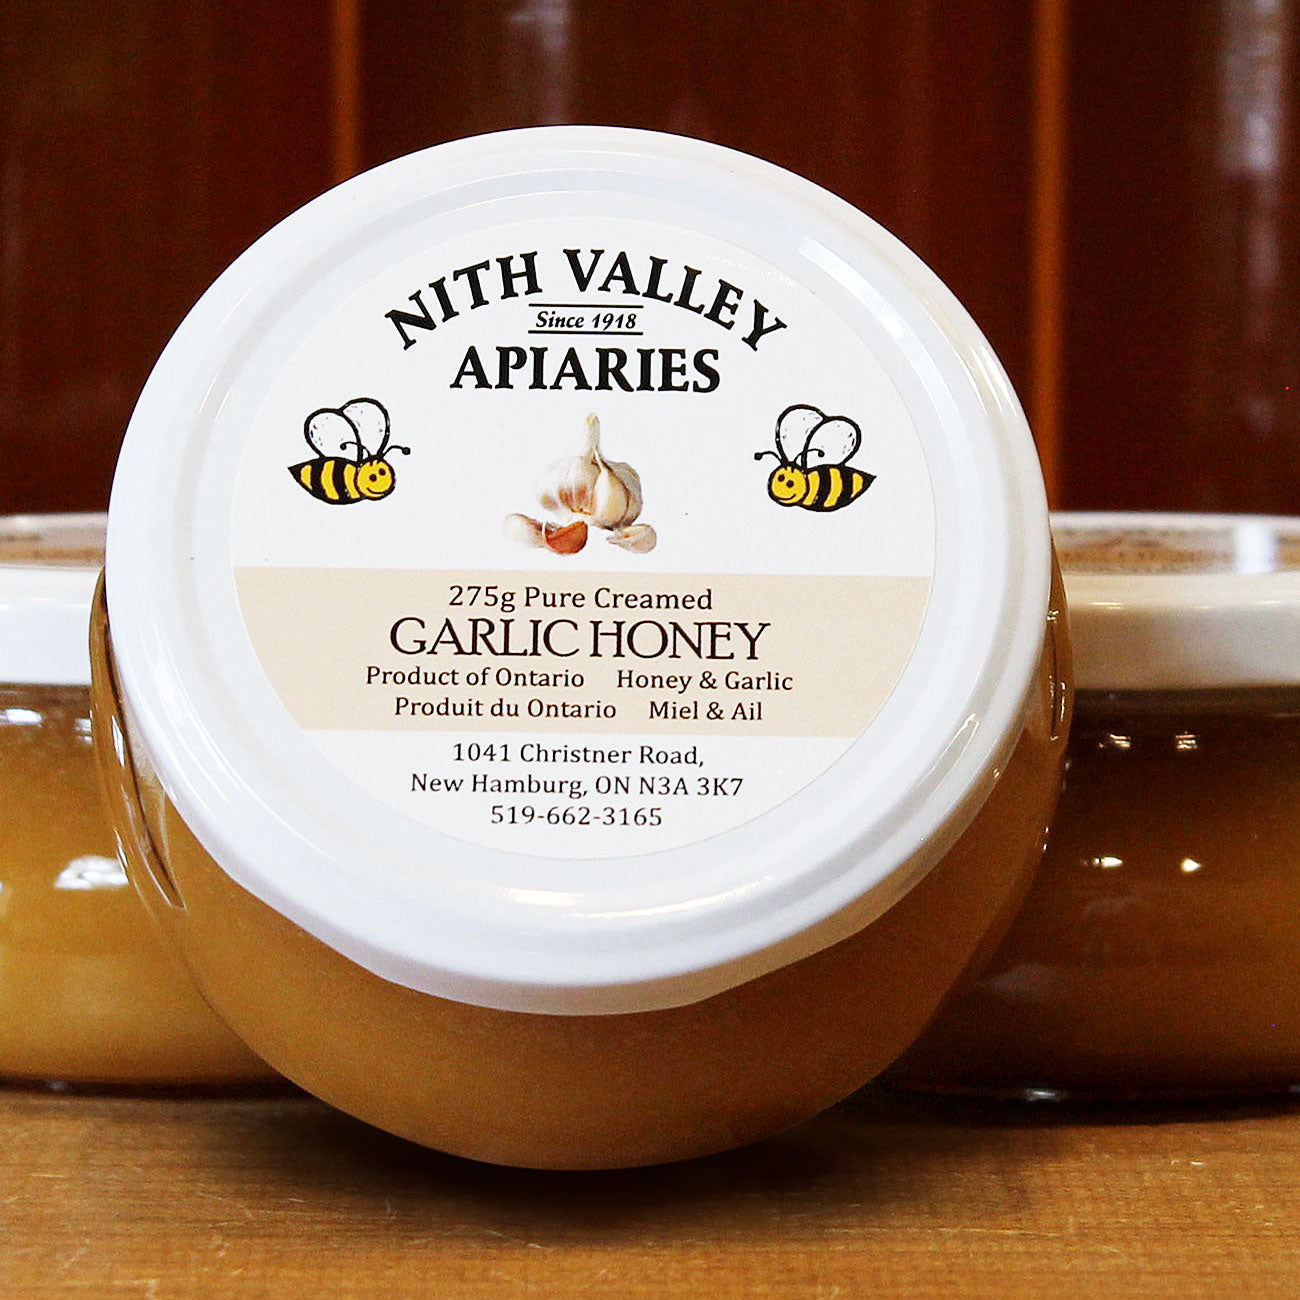 Garlic flavoured creamed honey